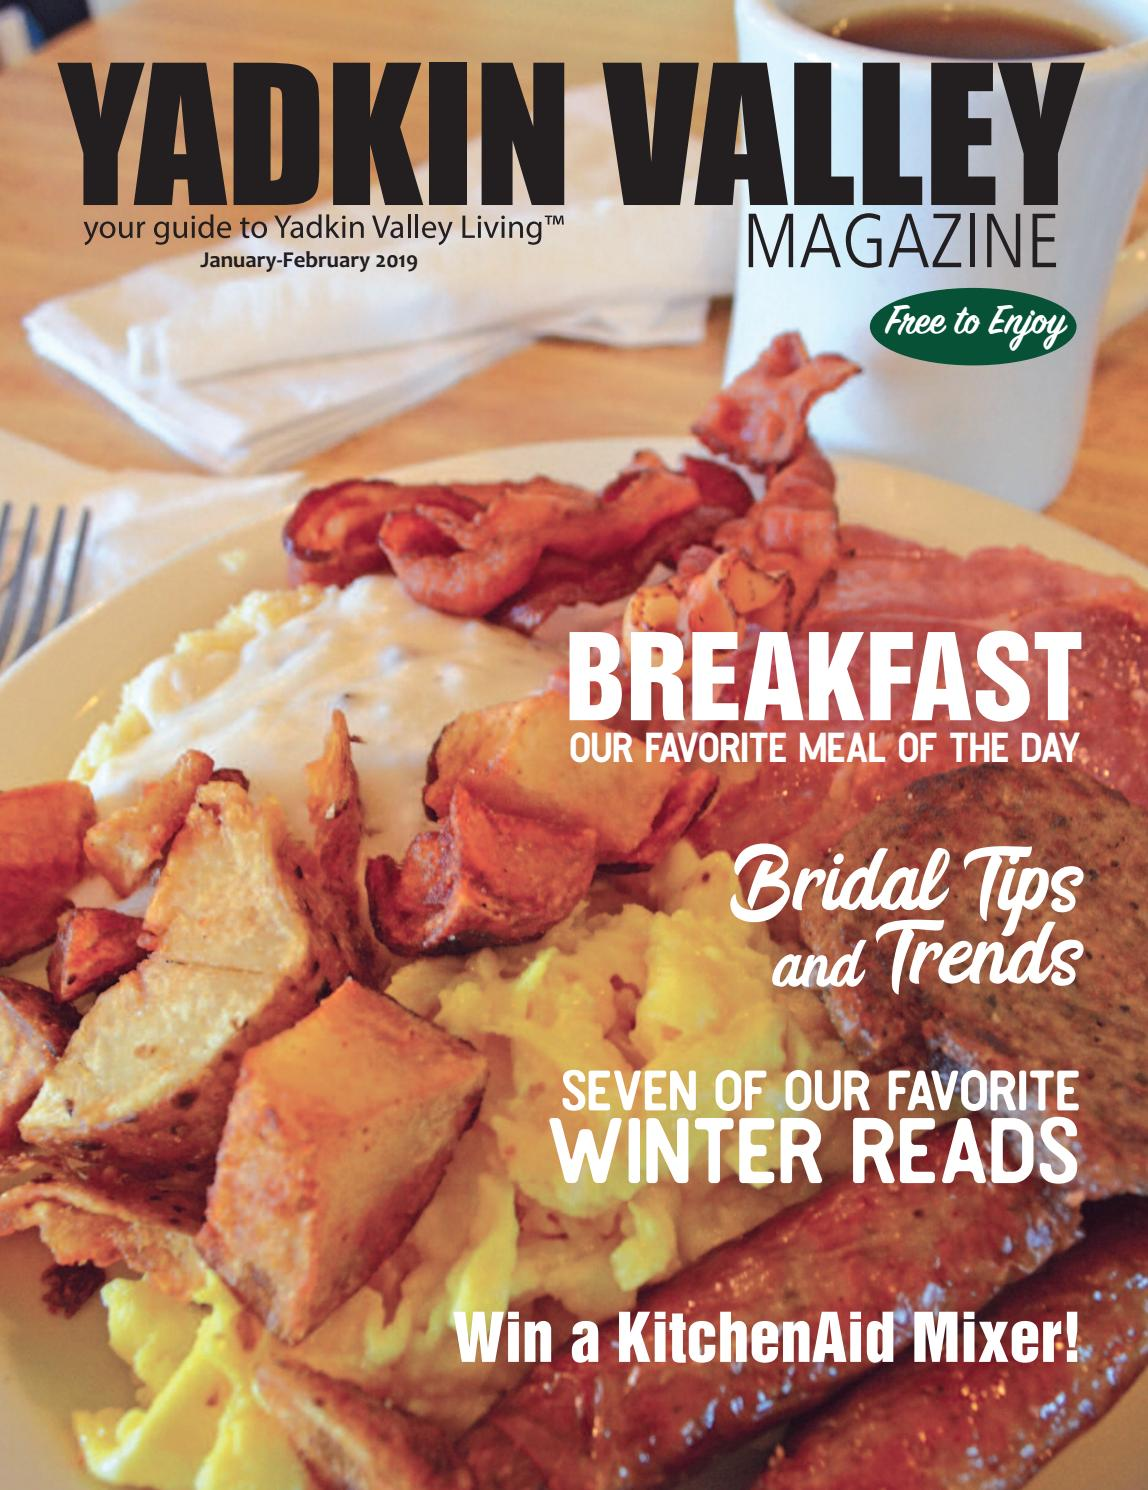 fa1ef3bc96f4f Yadkin Valley Magazine January-February 2019 by Yadkin Valley Magazine -  issuu